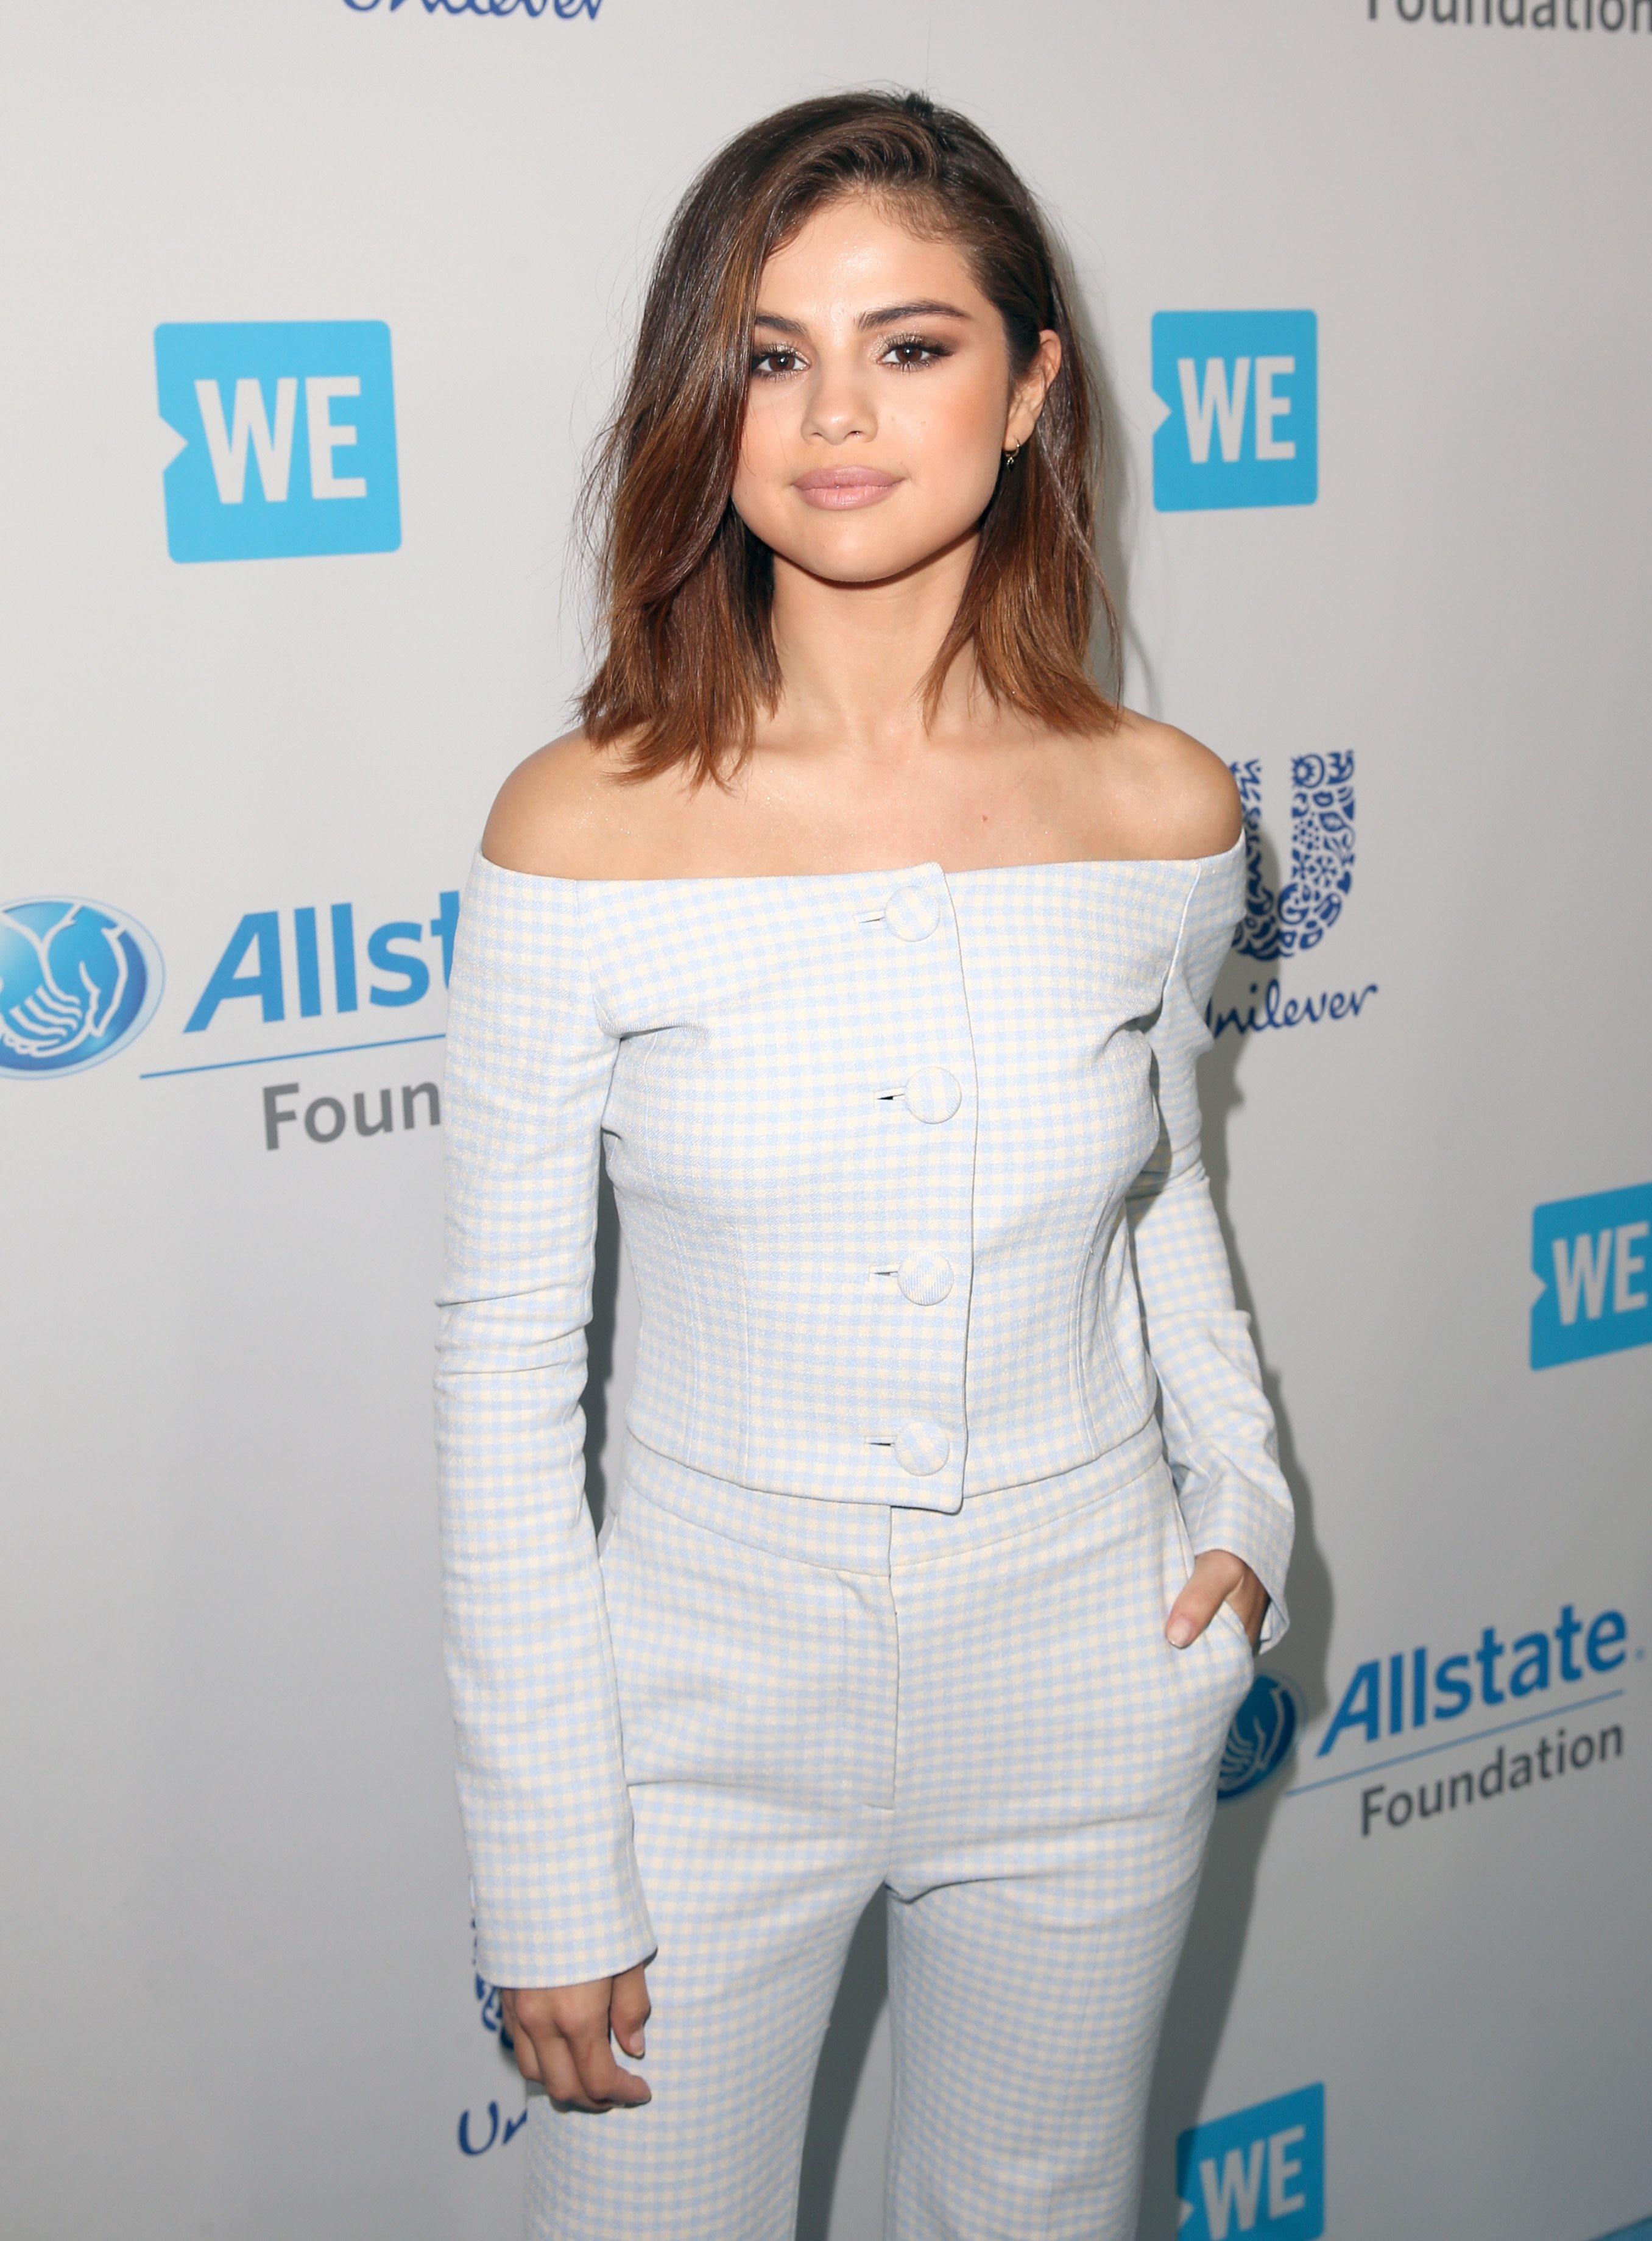 Image Source: Getty Images/Selena at the All State Foundation